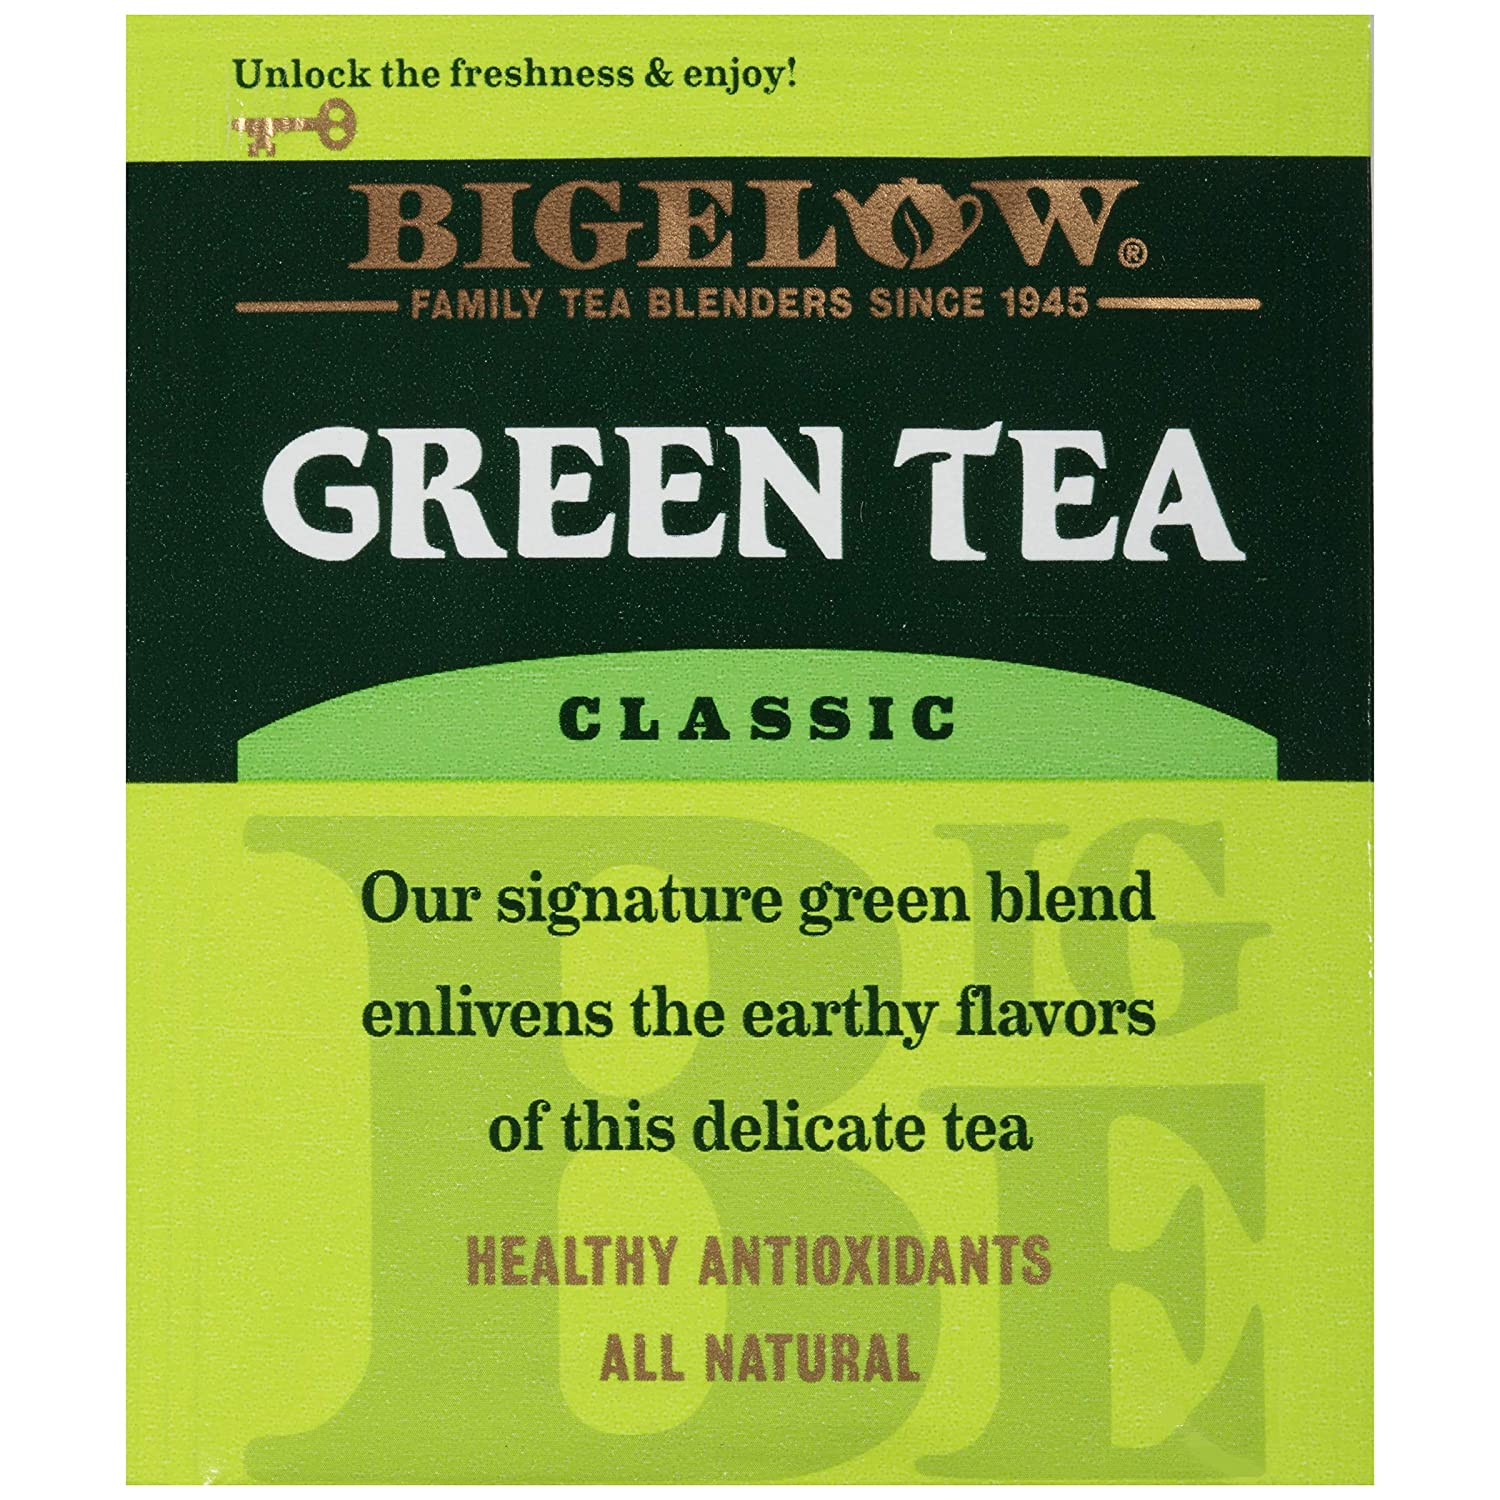 Bigelow Classic Green Tea 28-Count Box (Pack of 3) Premium Bagged Green Tea Bright Antioxidant-Rich All Natural Medium-Caffeine Tea